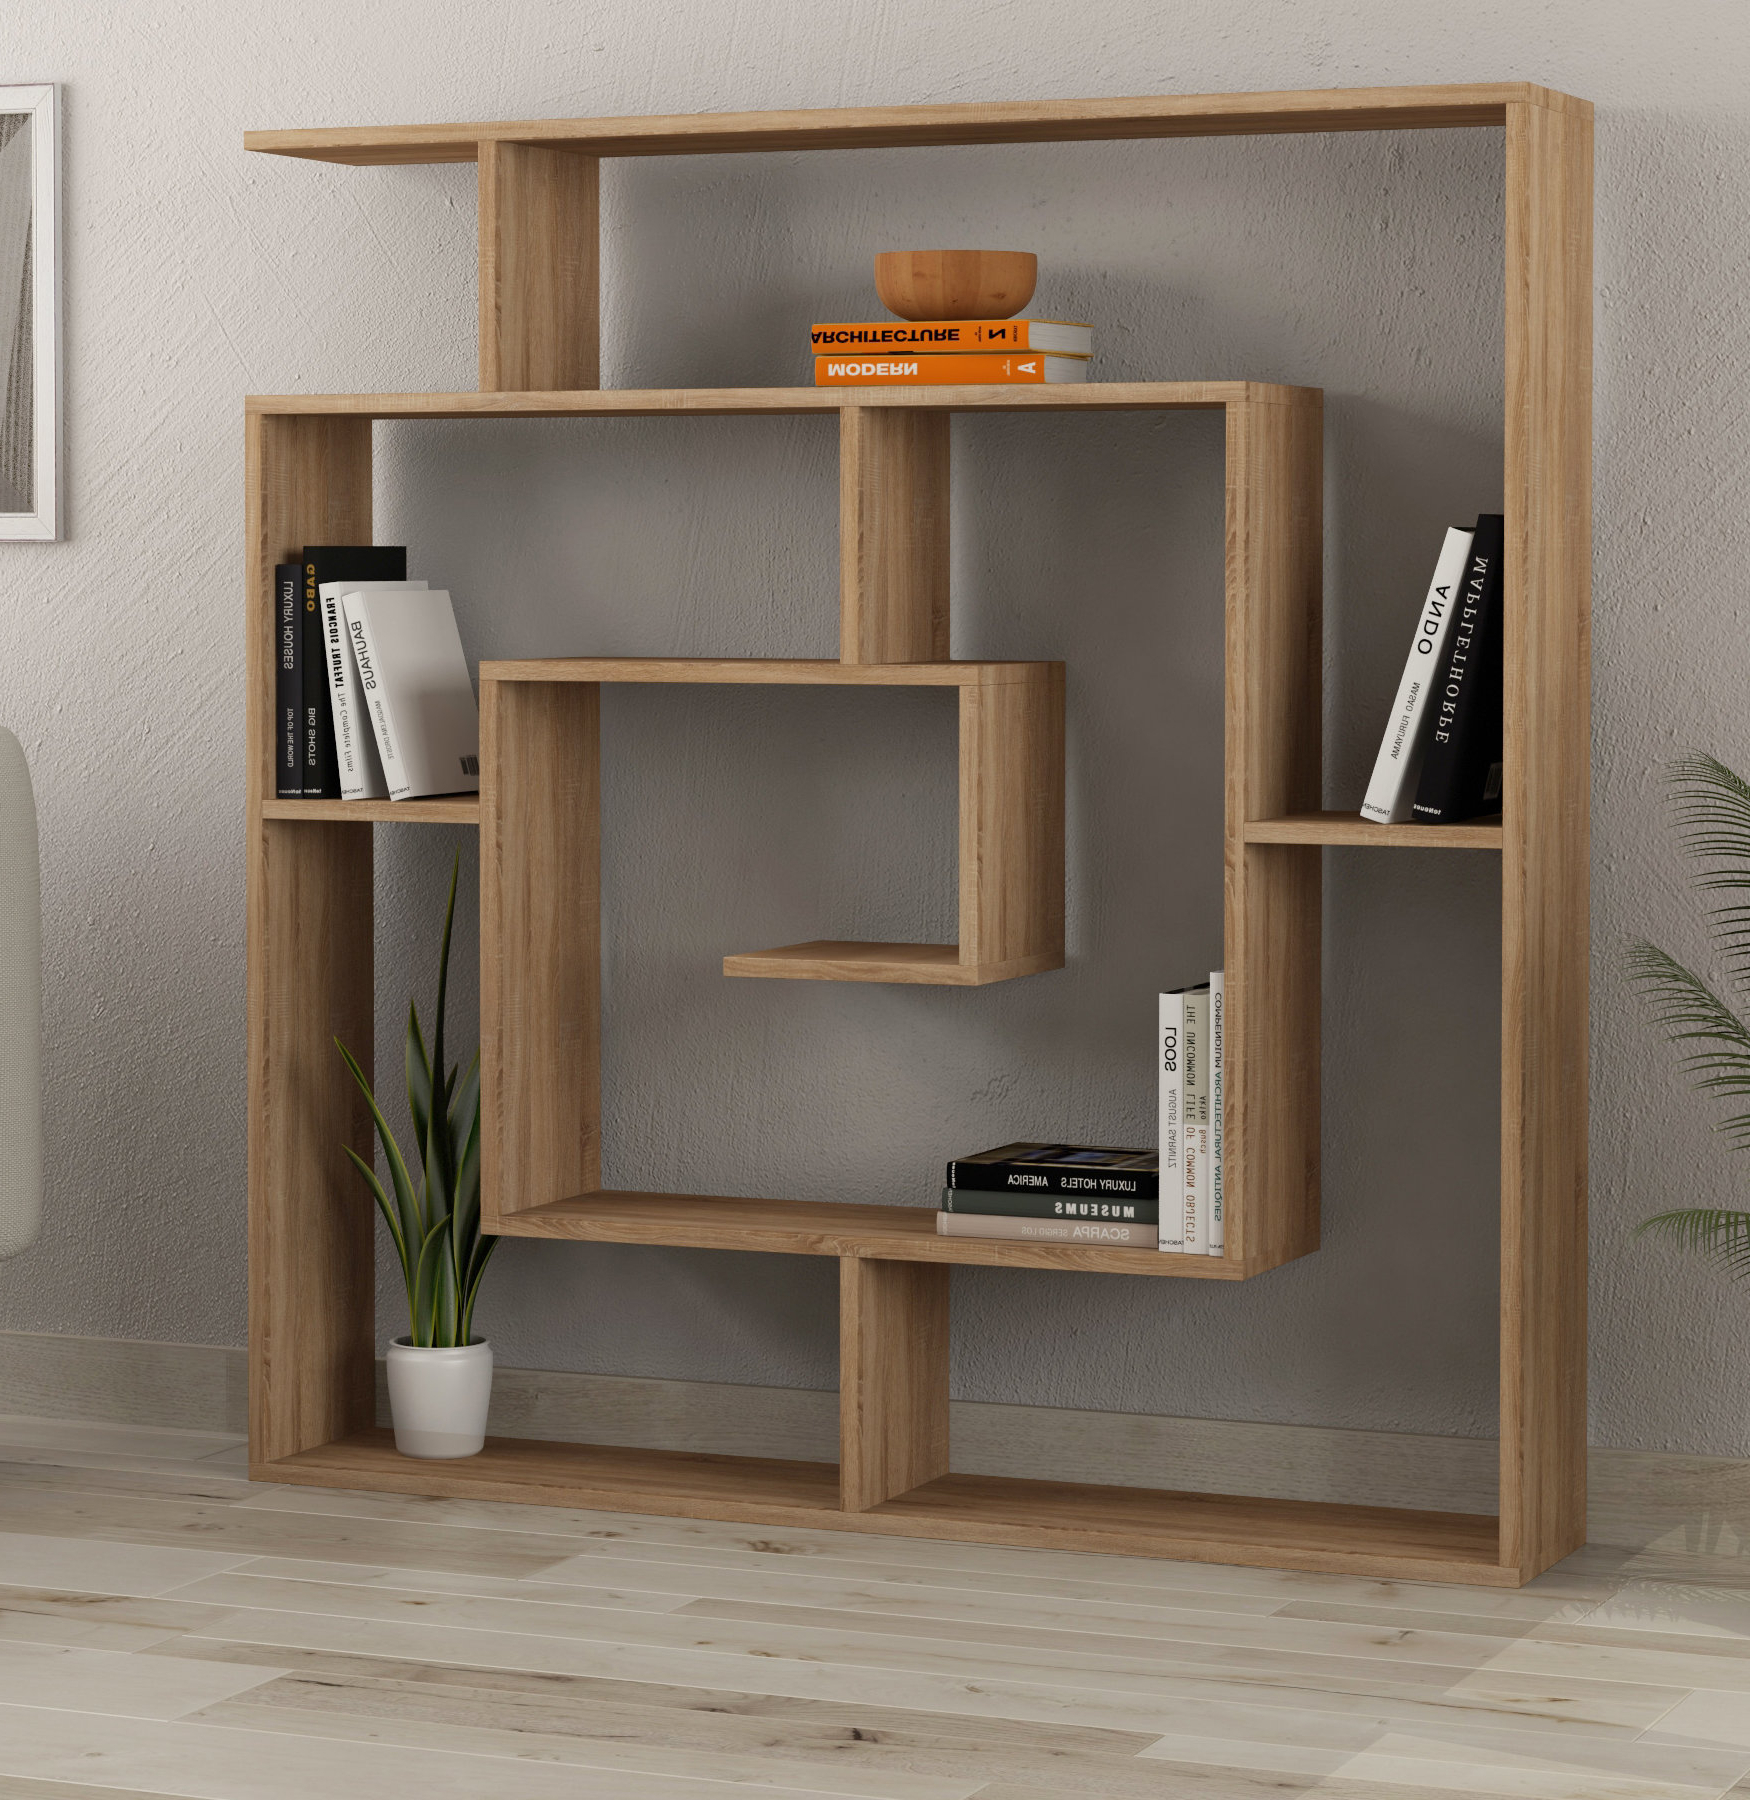 Mckibben Geometric Bookcase For Most Popular Mckibben Geometric Bookcases (View 4 of 20)